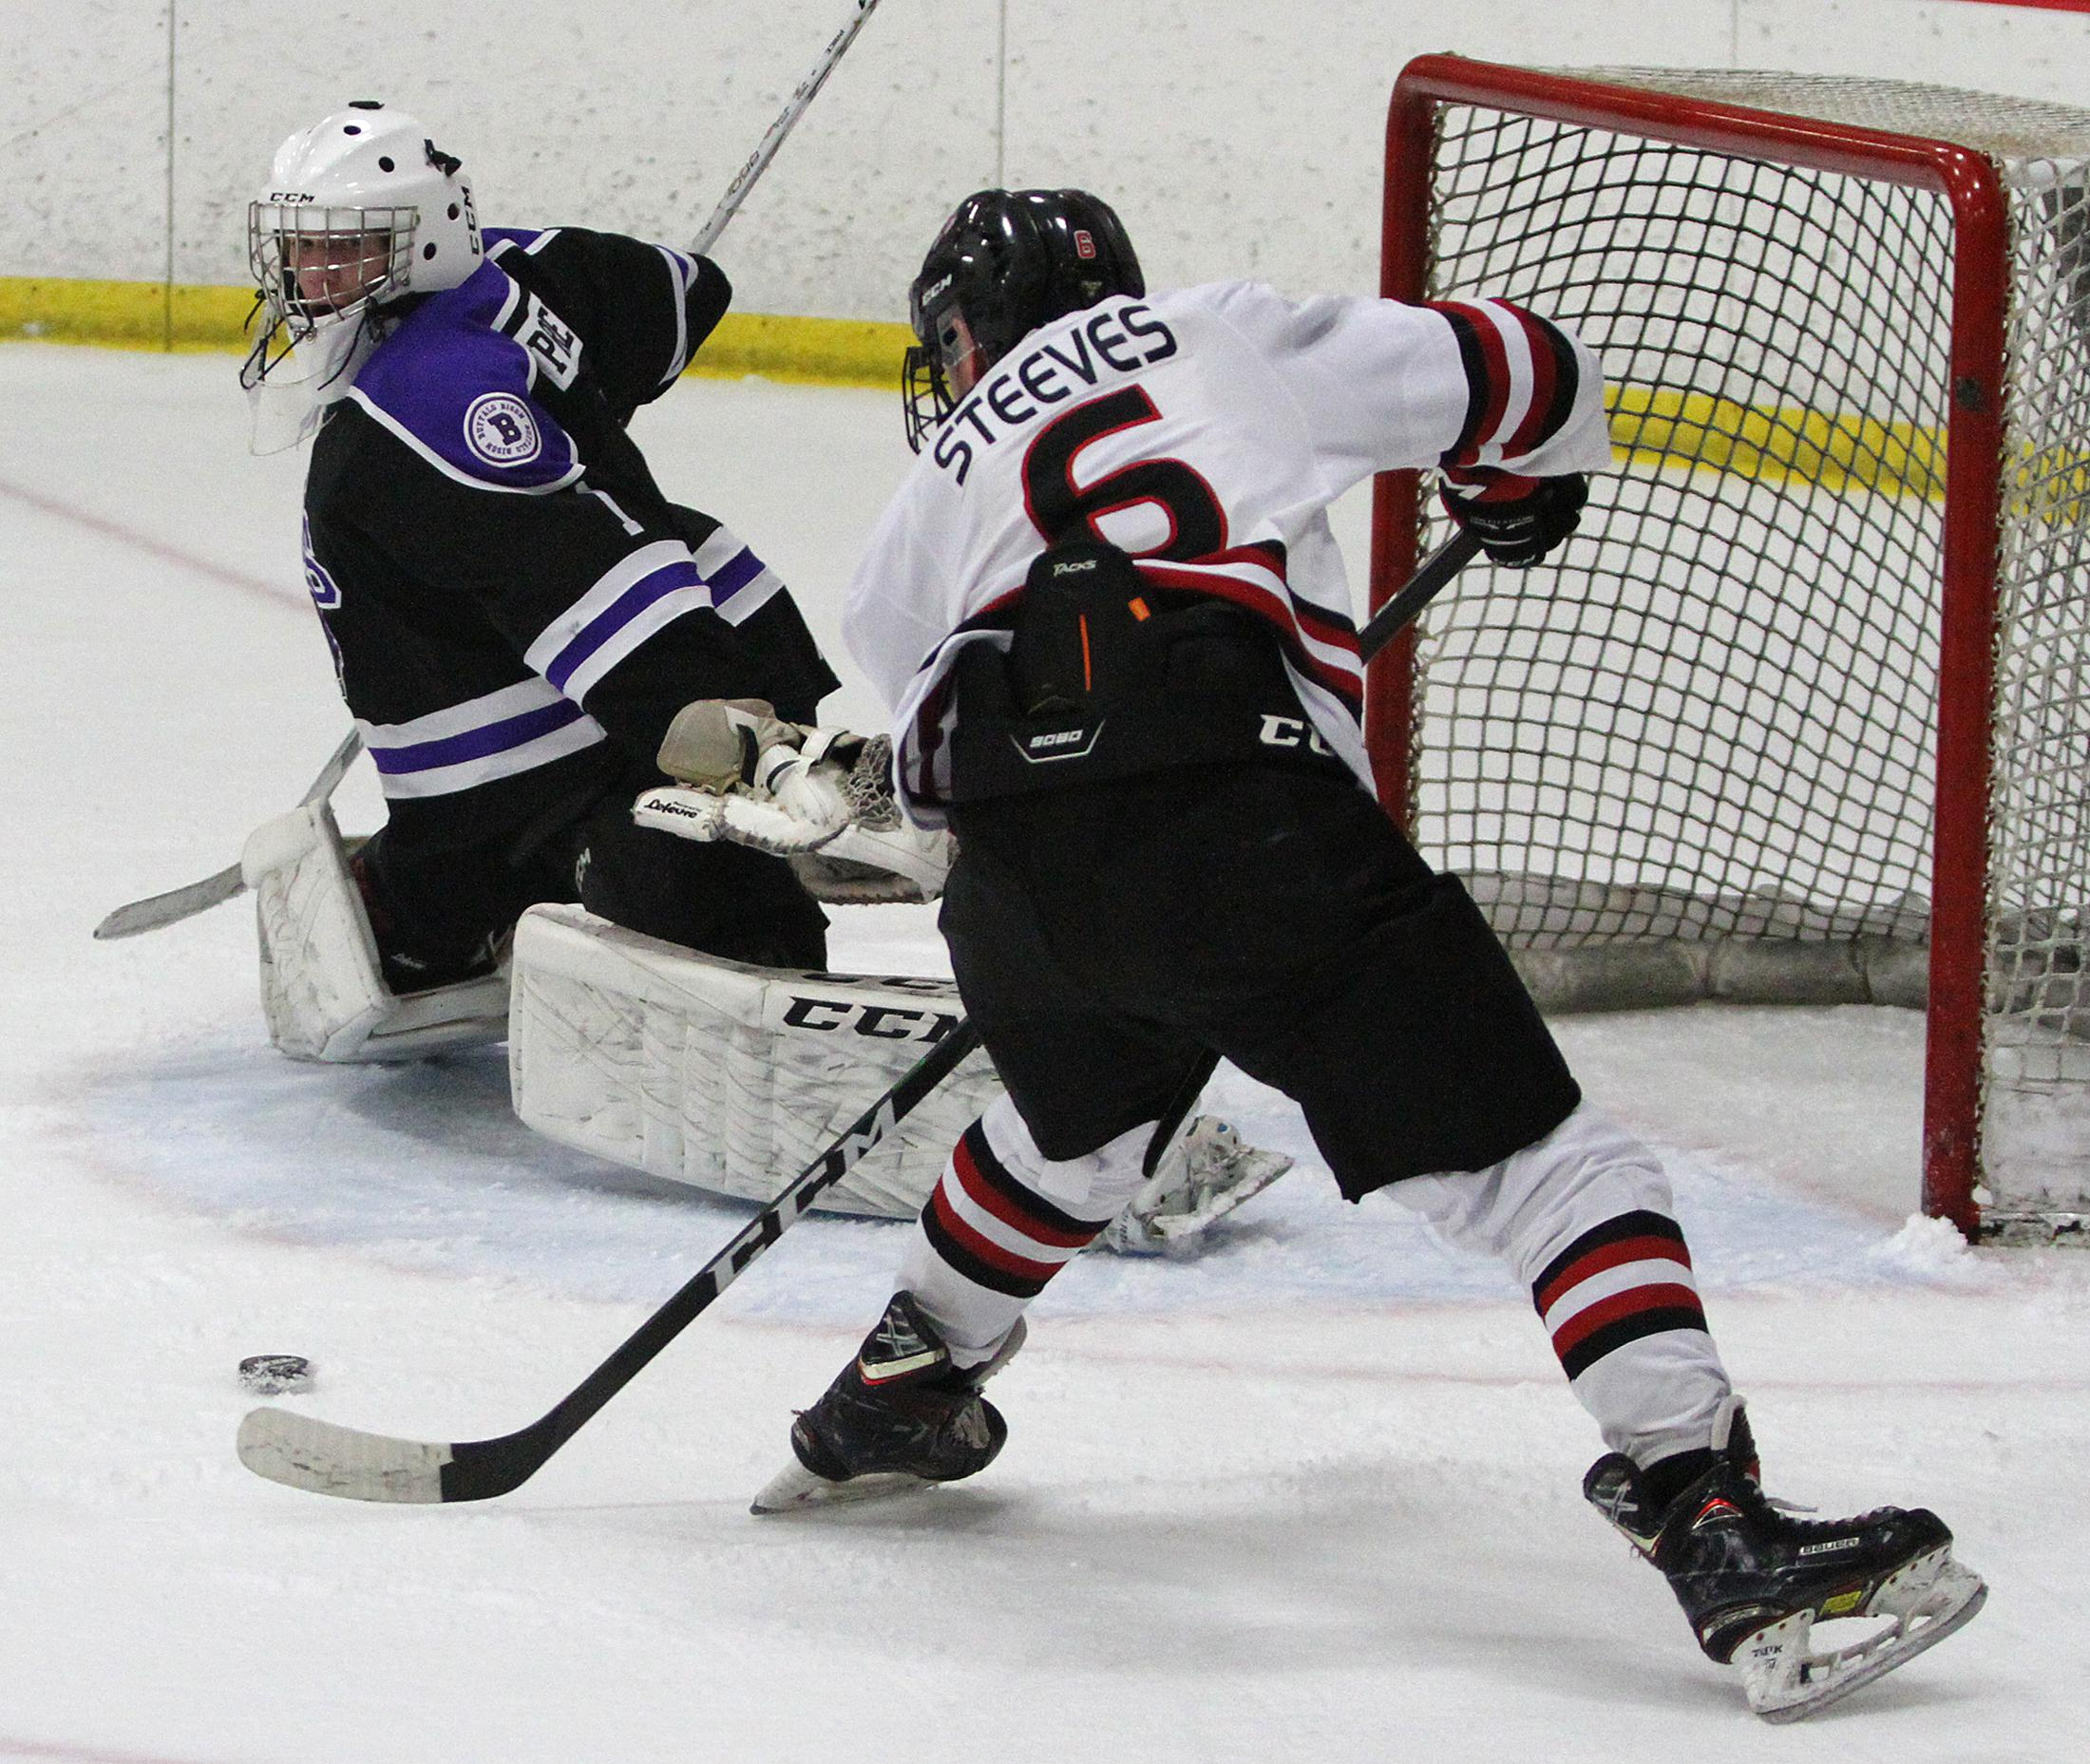 Eden Prairie senior forward Ben Steeves buries a first-period goal en route to a hat trick in Thursday's 9-1 victory over Buffalo. Photo by Drew Herron, SportsEngine